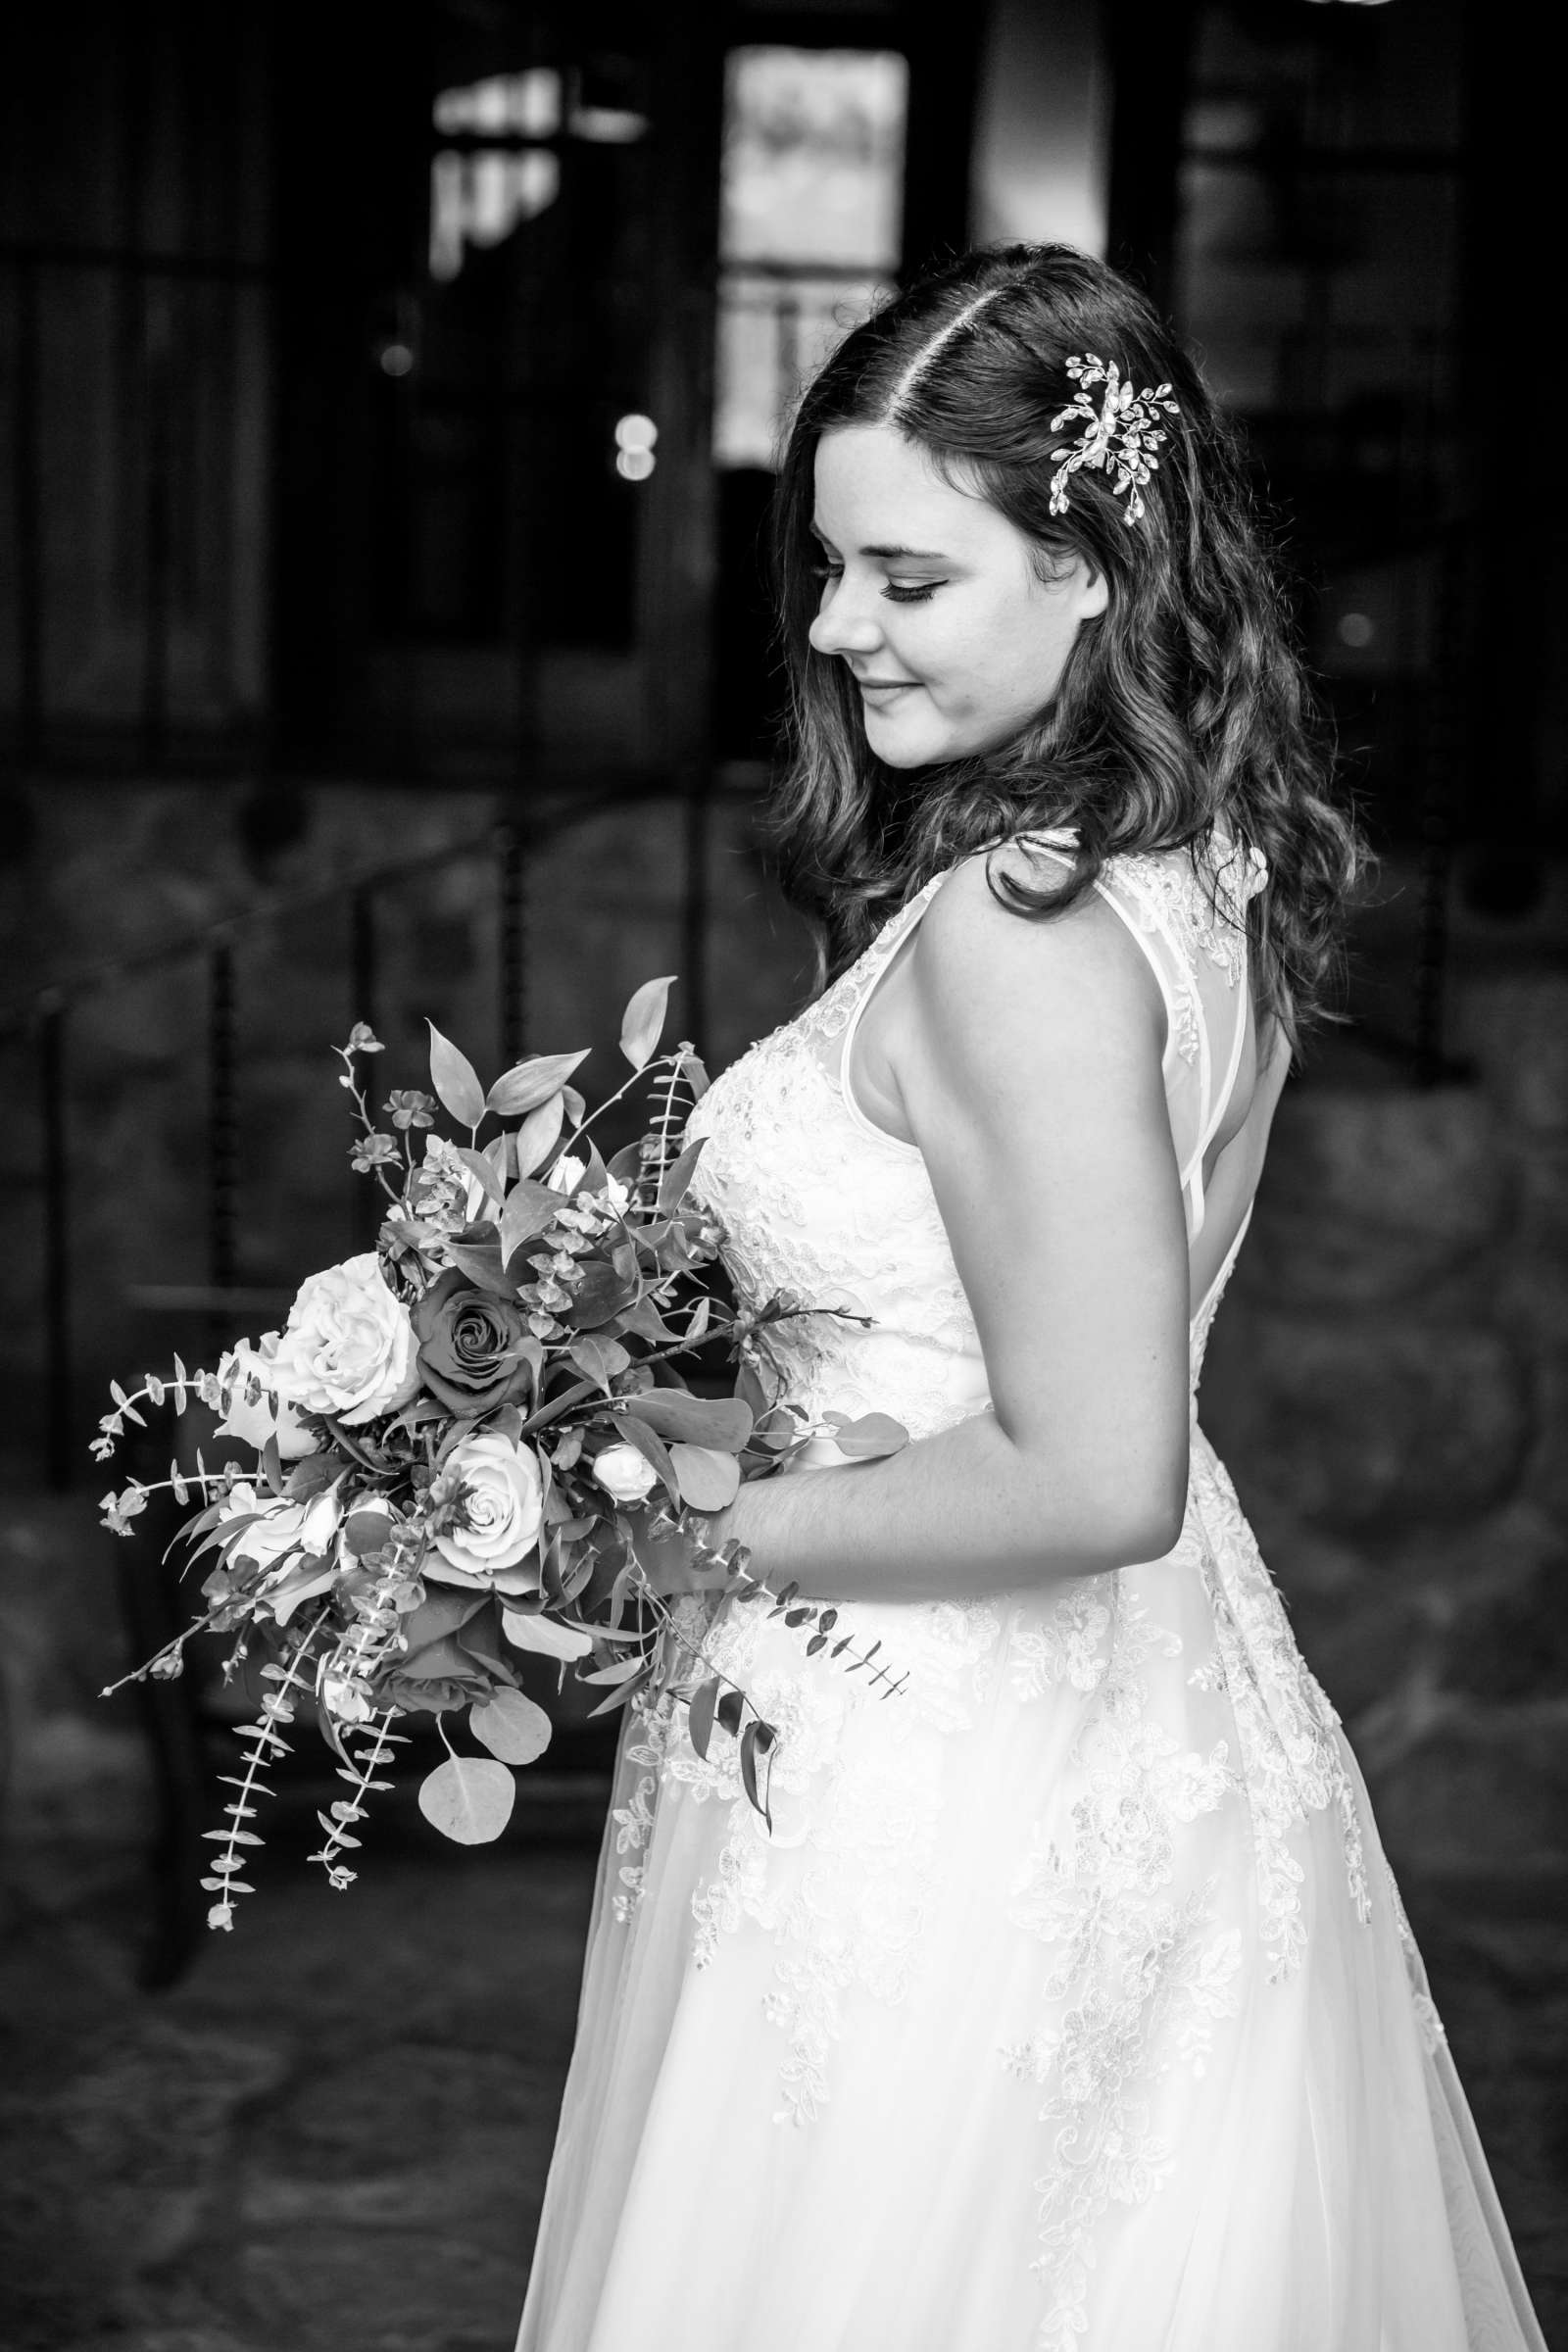 Mt Woodson Castle Wedding, Valerie and Ian Wedding Photo #20 by True Photography